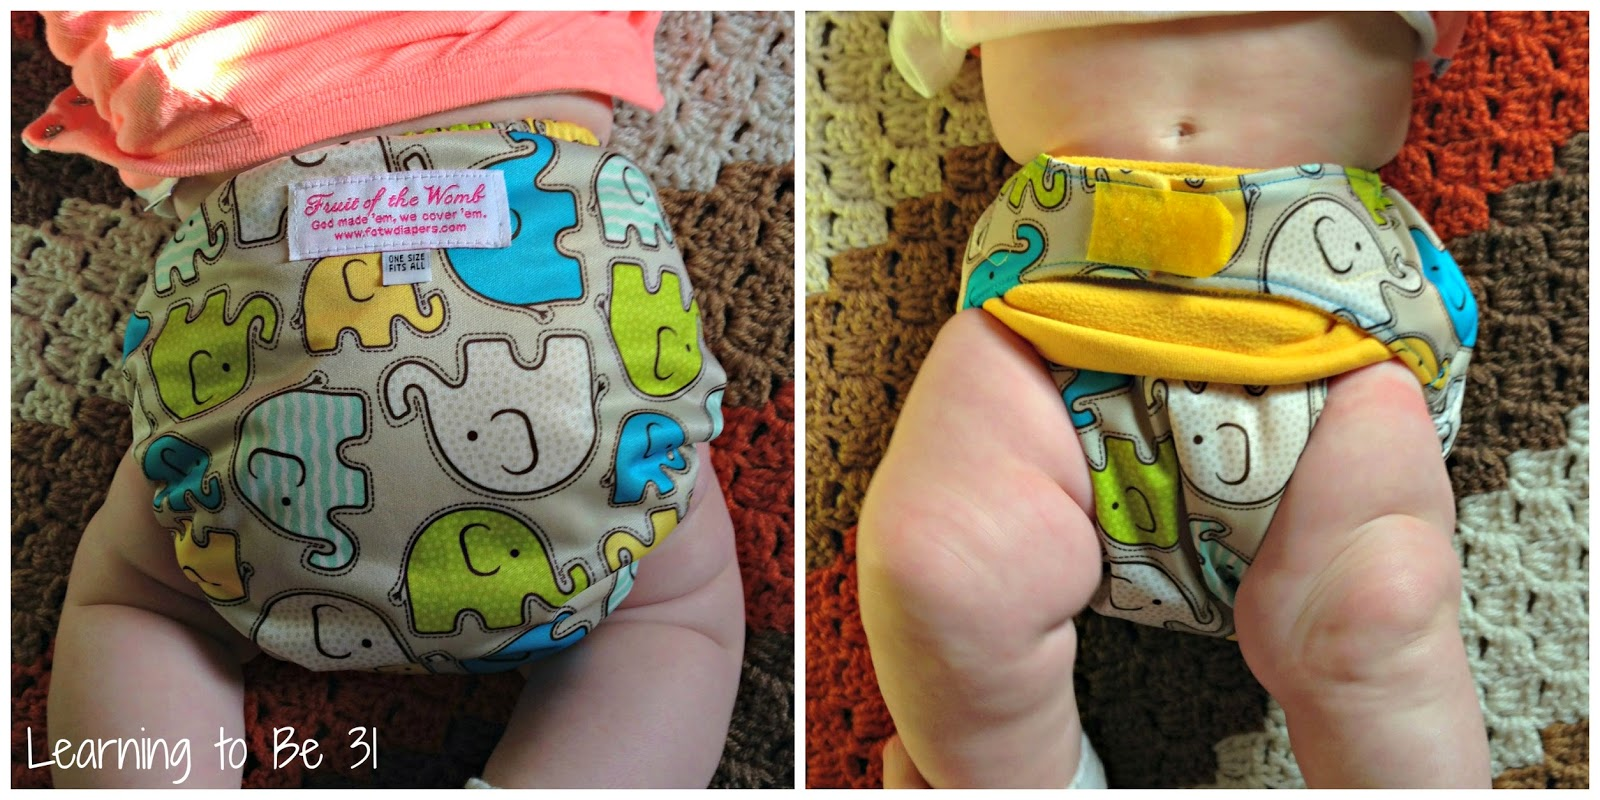 Cloth Diaper, Giveaway, One Size, All in One, AIO, AI2, All in Two, Overnight, Elephant, Gender Neutral, No Leaks, Hook & Loop, Velcro, Fold Down Rise, Christian Company, Small Business, Work at Home Mom, Review